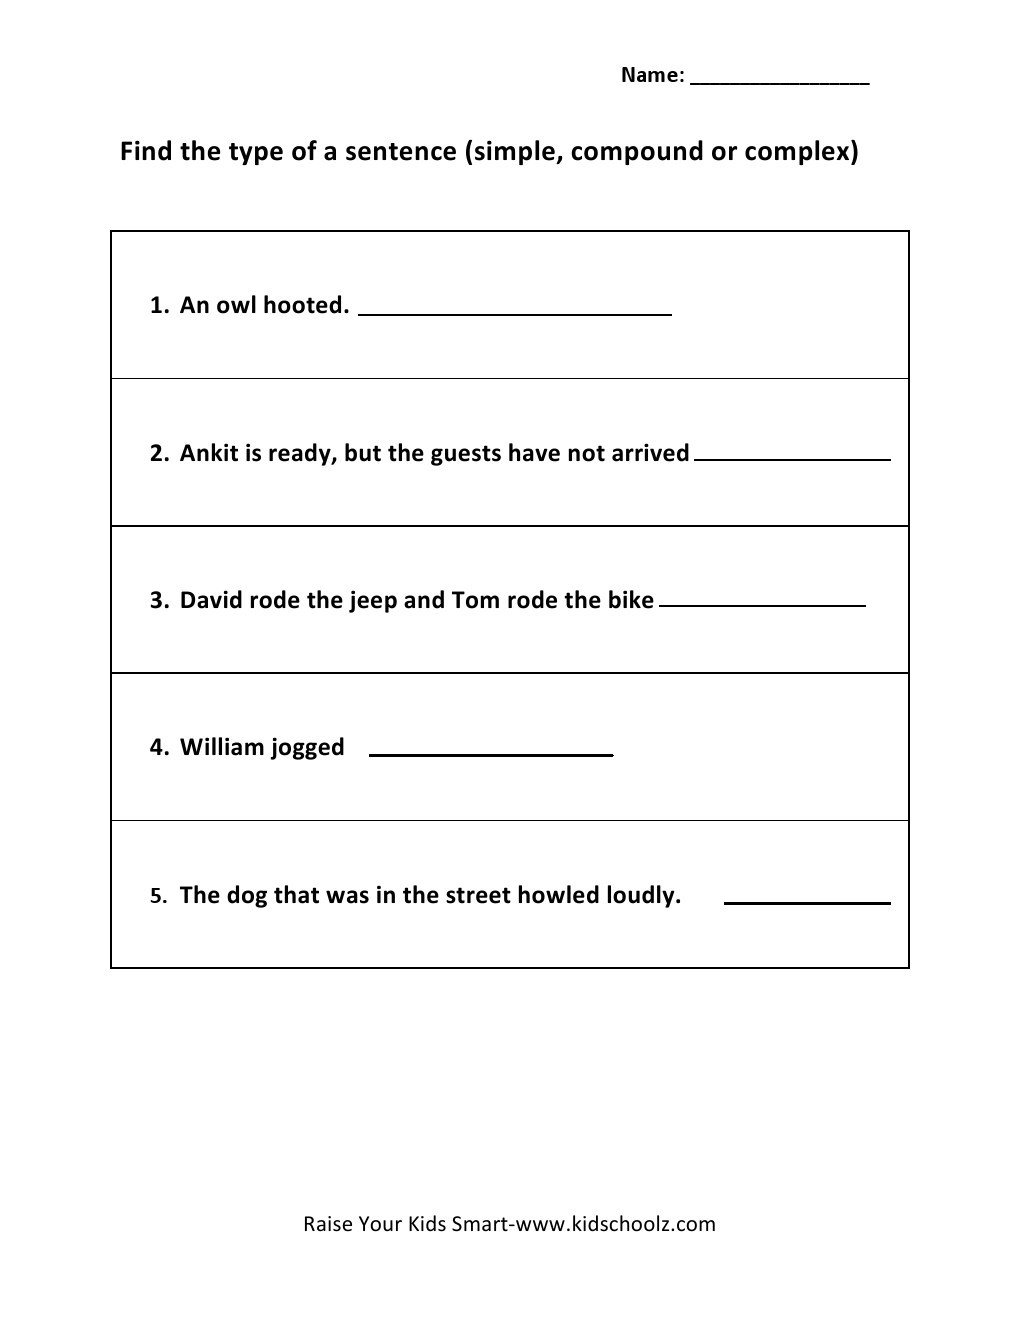 Complex Sentence Worksheets 4th Grade Types Sentences Worksheets for Educations Types Of